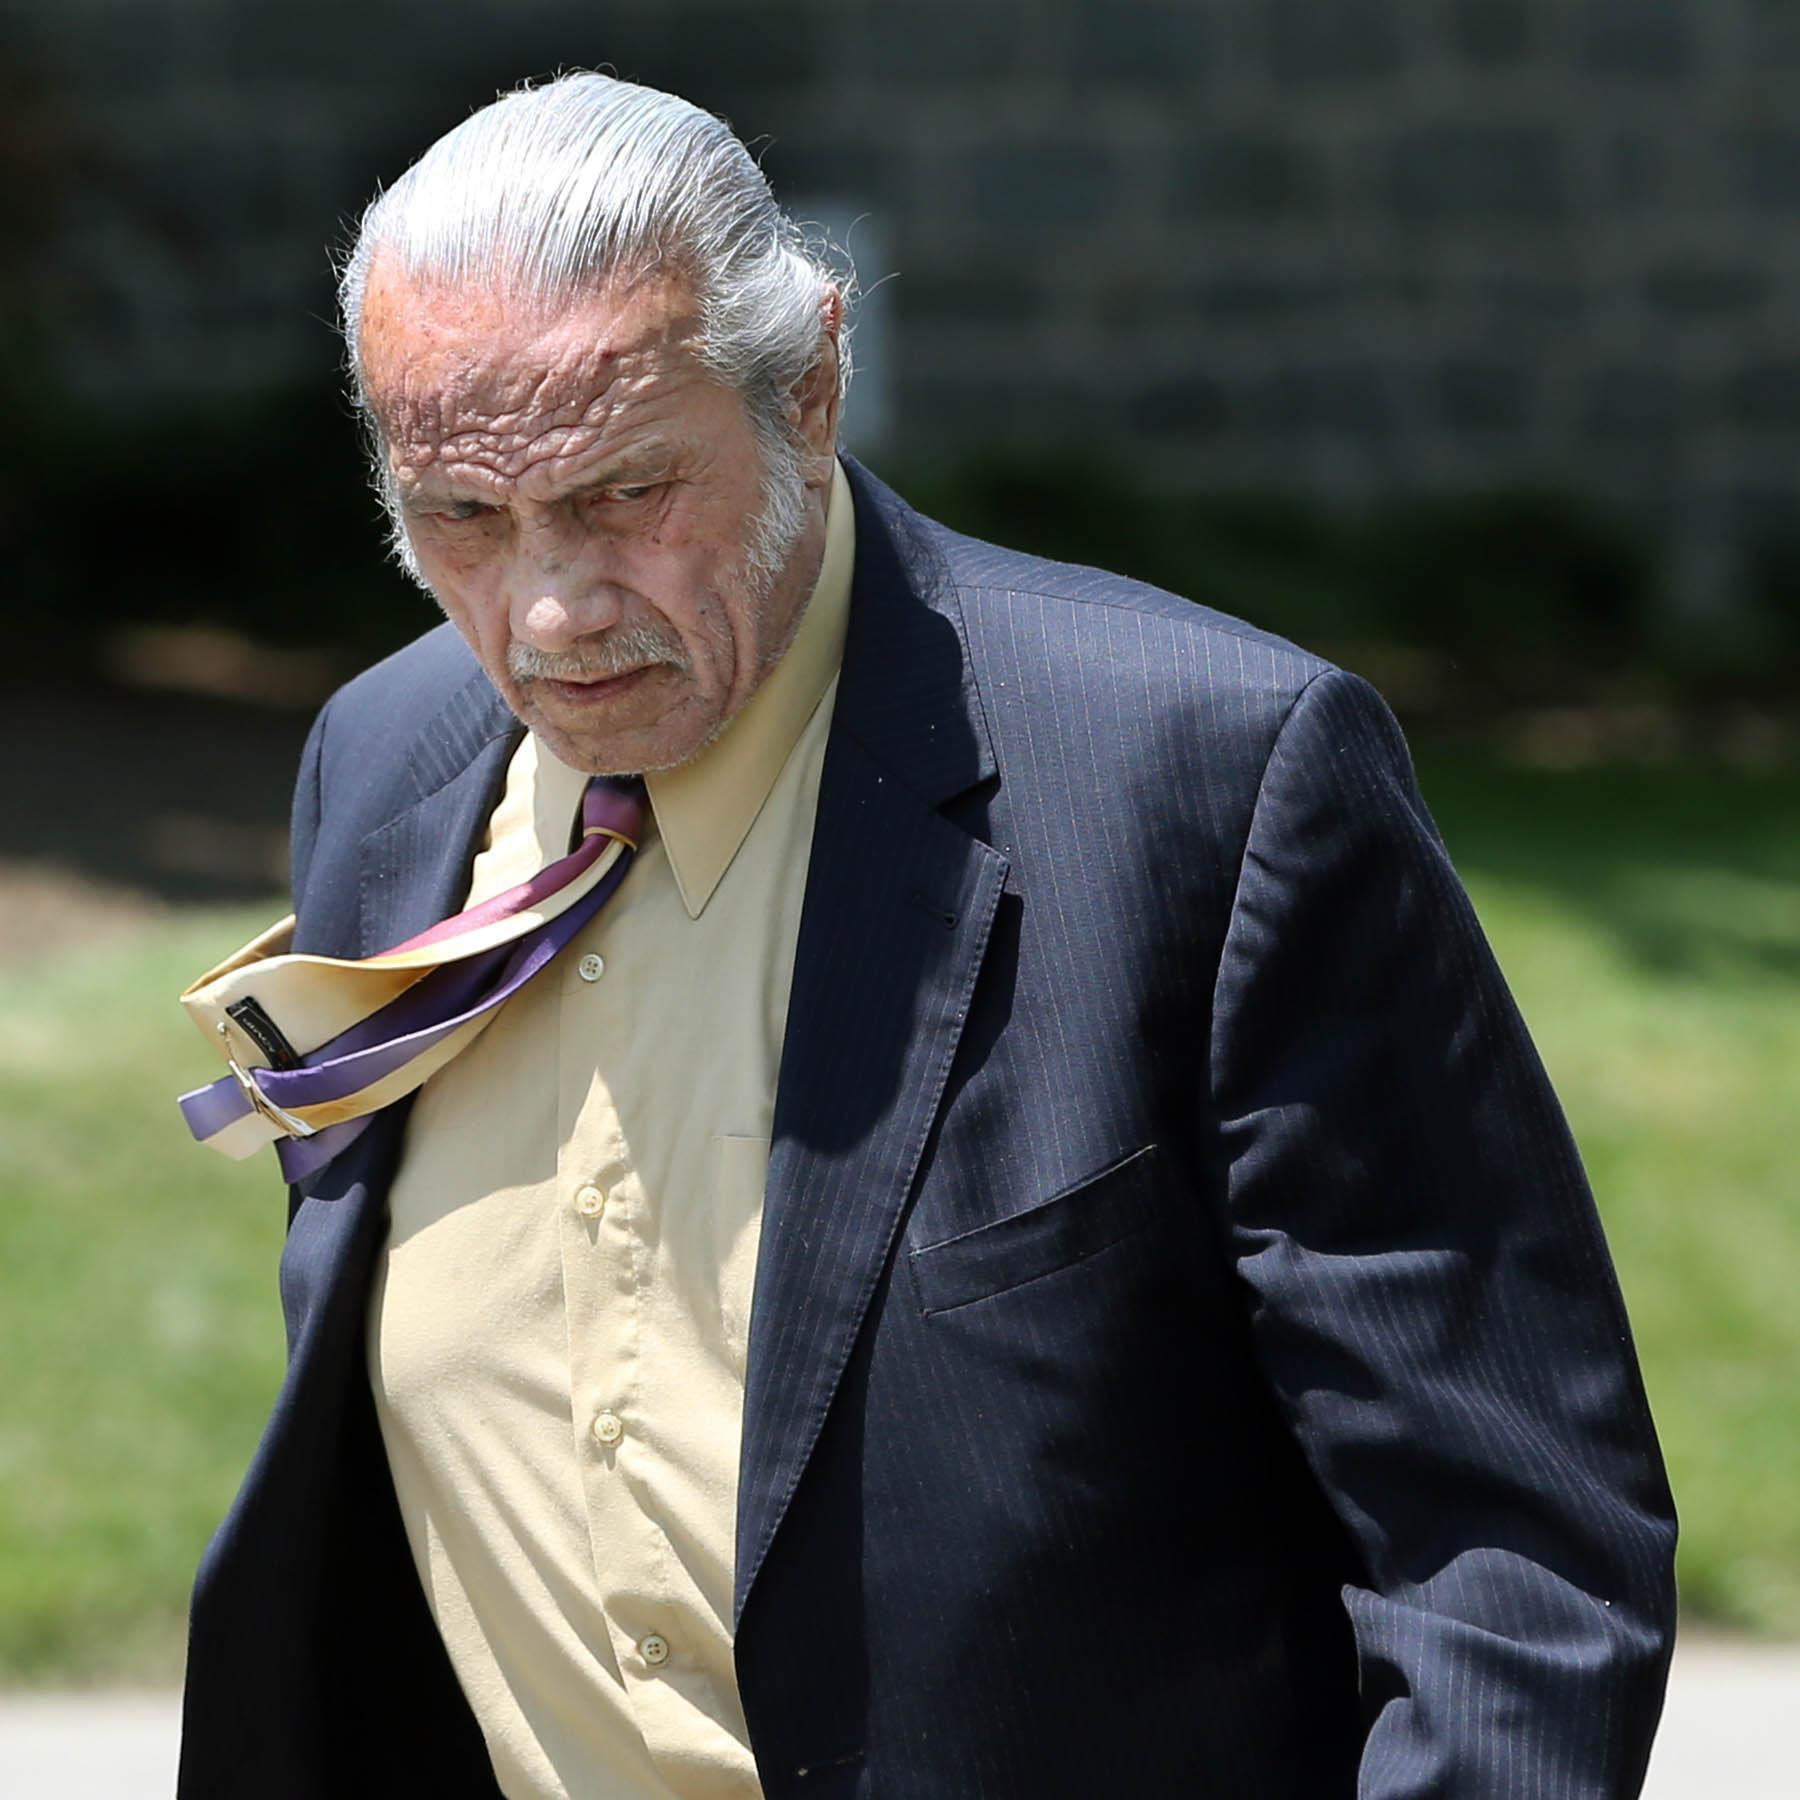 will jimmy snuka prosecution remain stalled the morning call